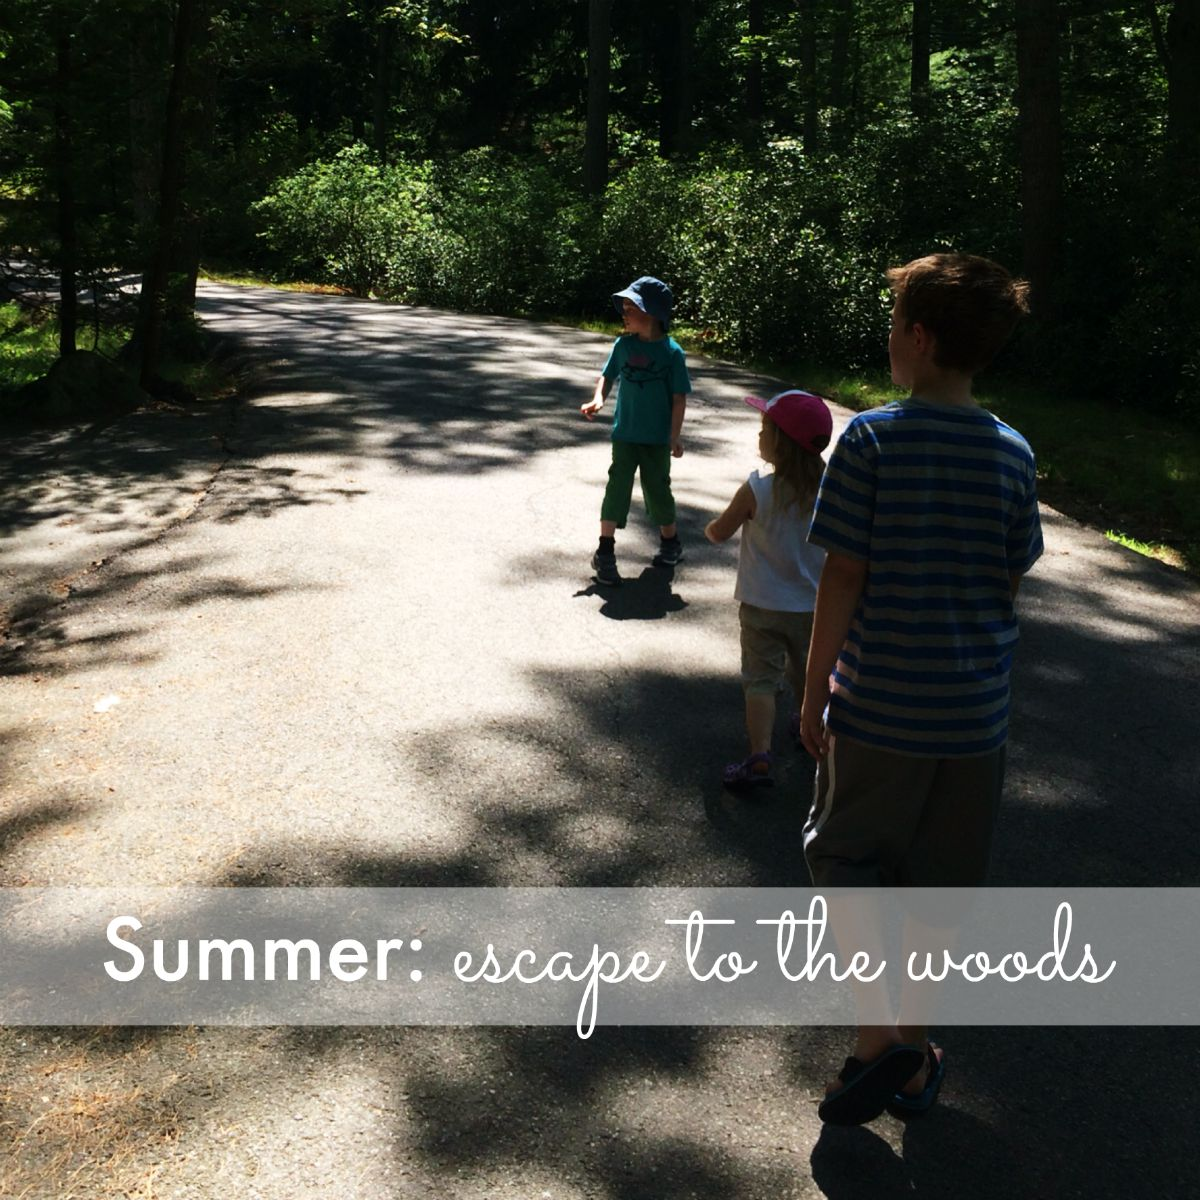 Summer: an escape to the woods